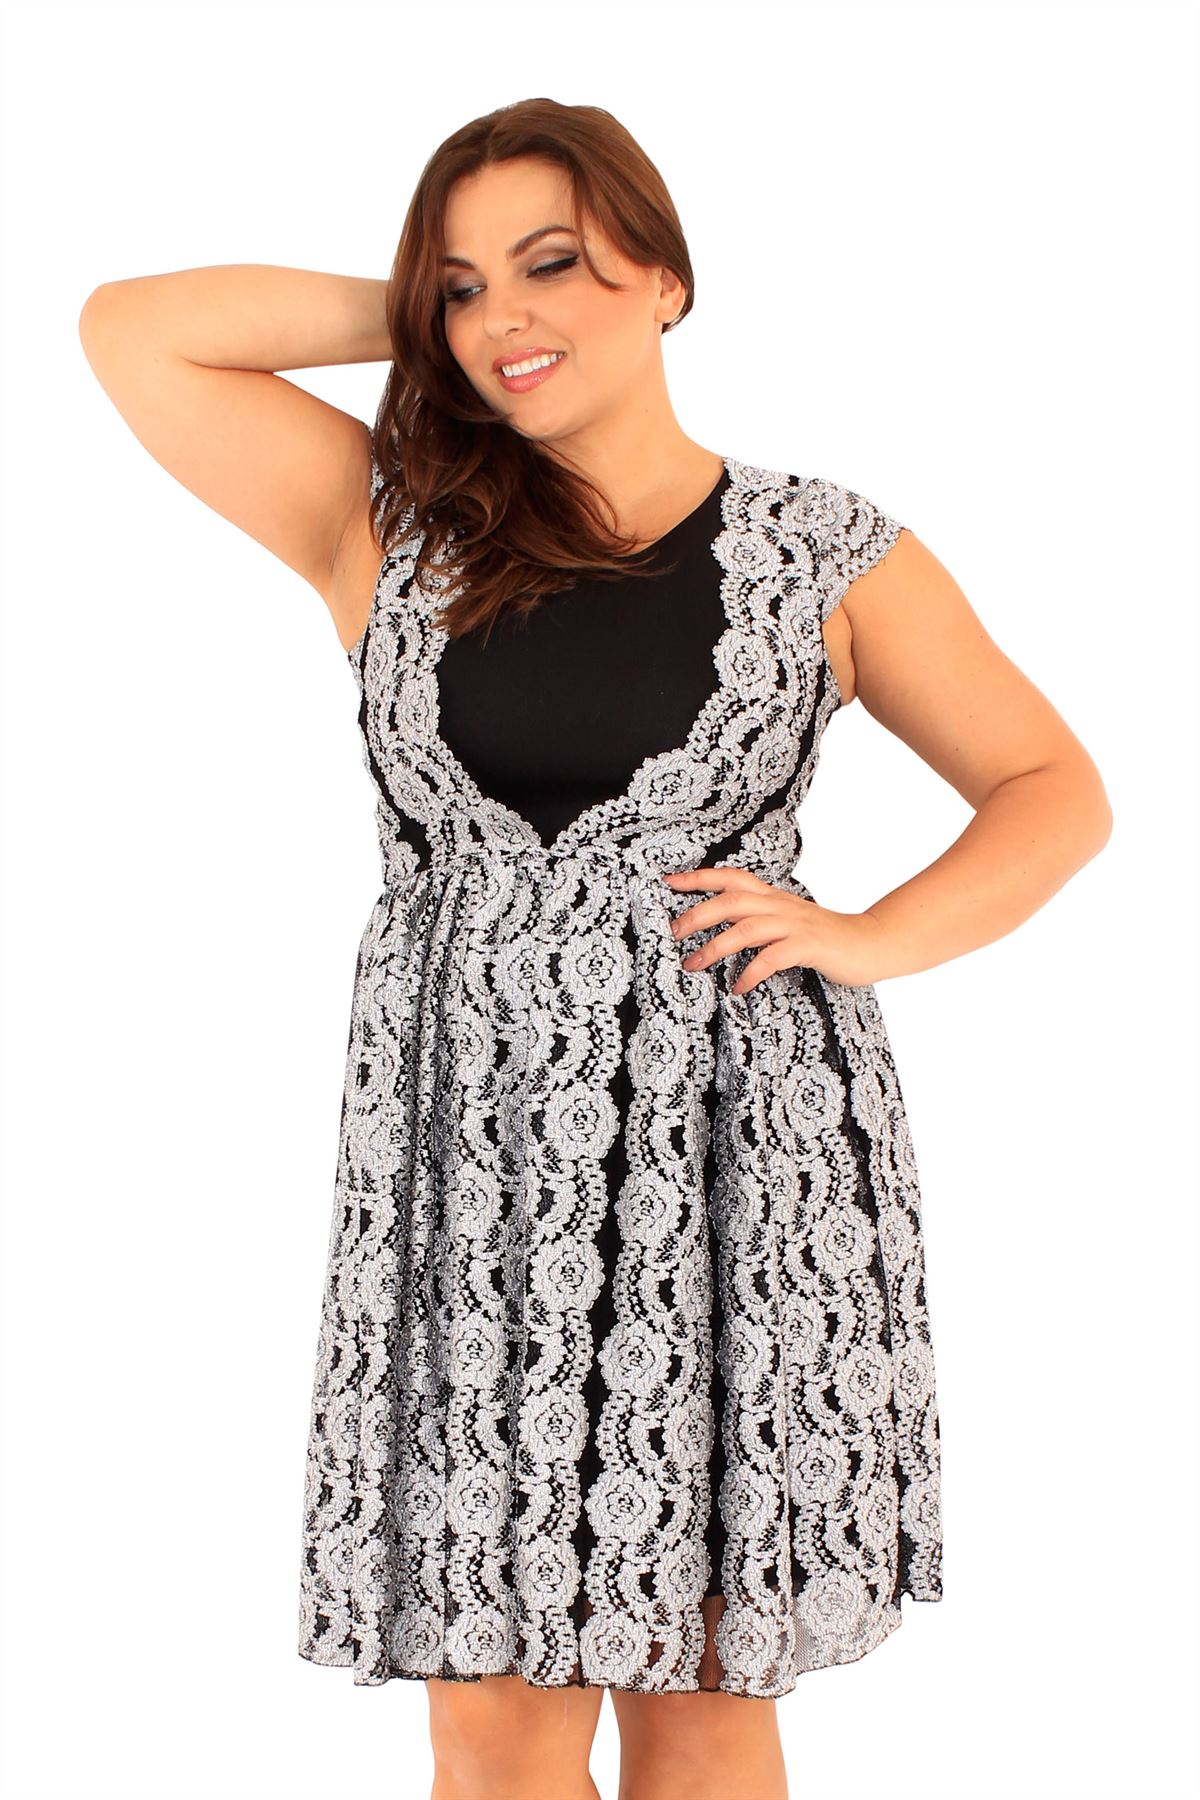 fa5dcf4e0b21 New Ladies Lace Lined Cap Sleeve Skater Dress 18-24 | eBay